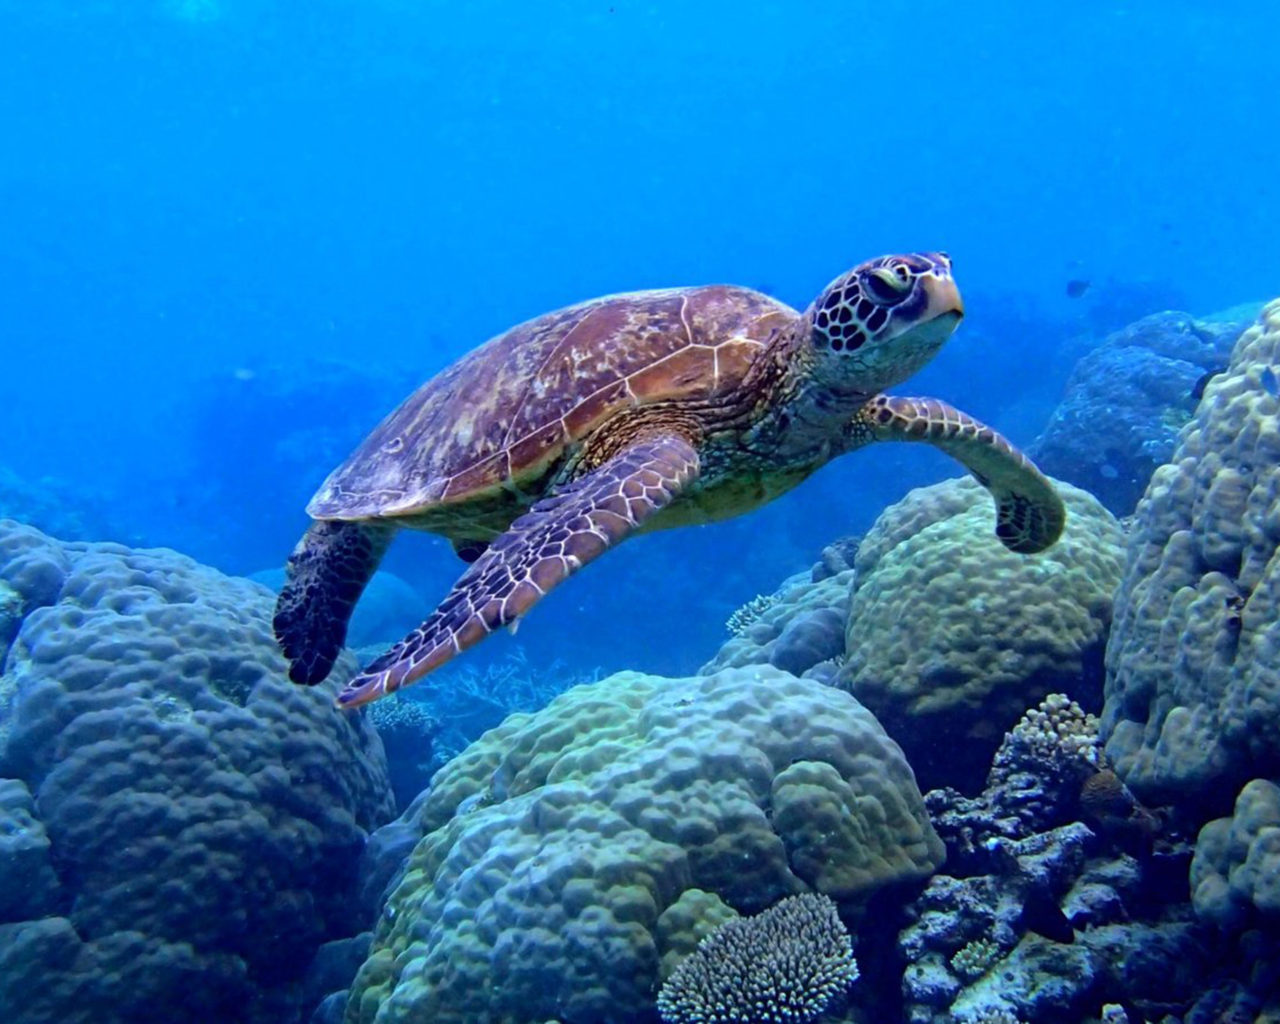 Sea Turtle Iphone Wallpaper Sea Turtle Swimming Underwater Scene Coral Image Desktop